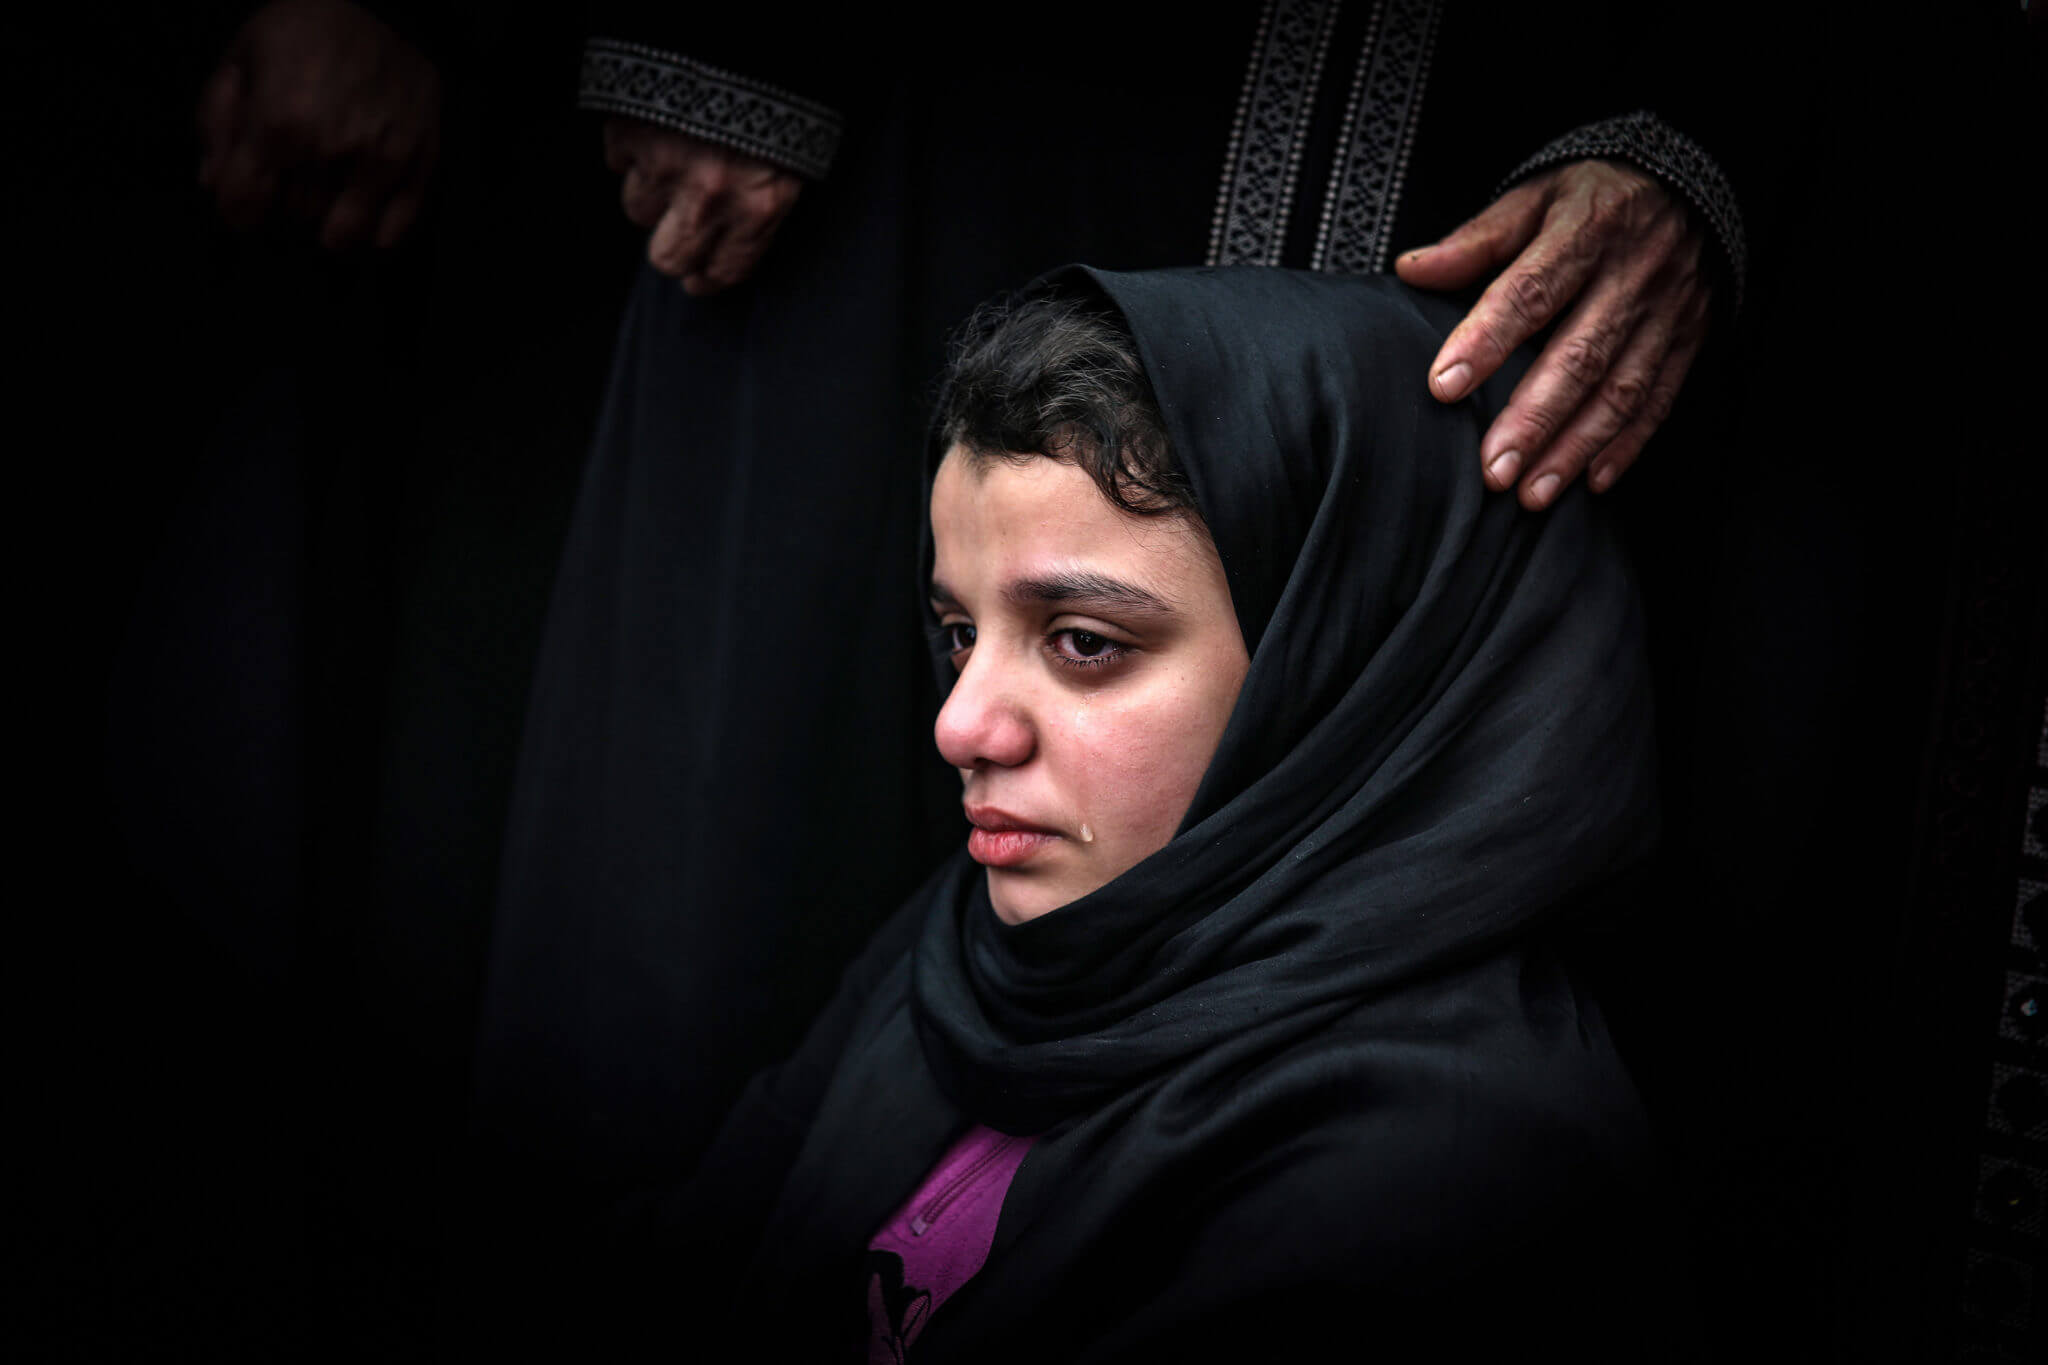 Relatives of Palestinian Islamic Jihad leader Baha Abu Al-Atta, who died hit by an Israeli airstrike mourn during his funeral in Gaza City, on November 12, 2019.(Photo: by Mohammed Zaanoun / Activestills.org)